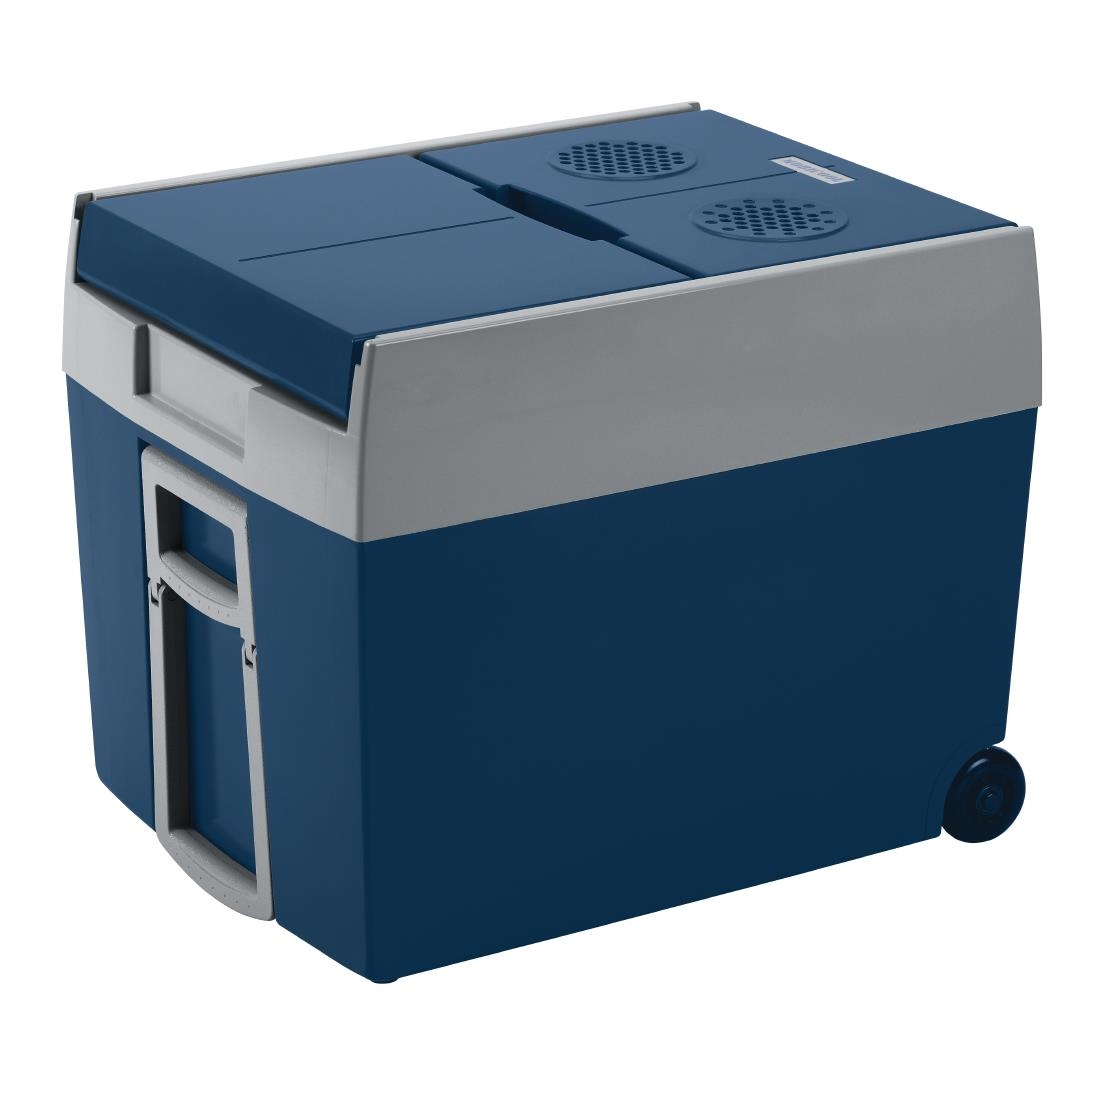 Image of Mobicool Thermoelectric Cool Box 48Ltr